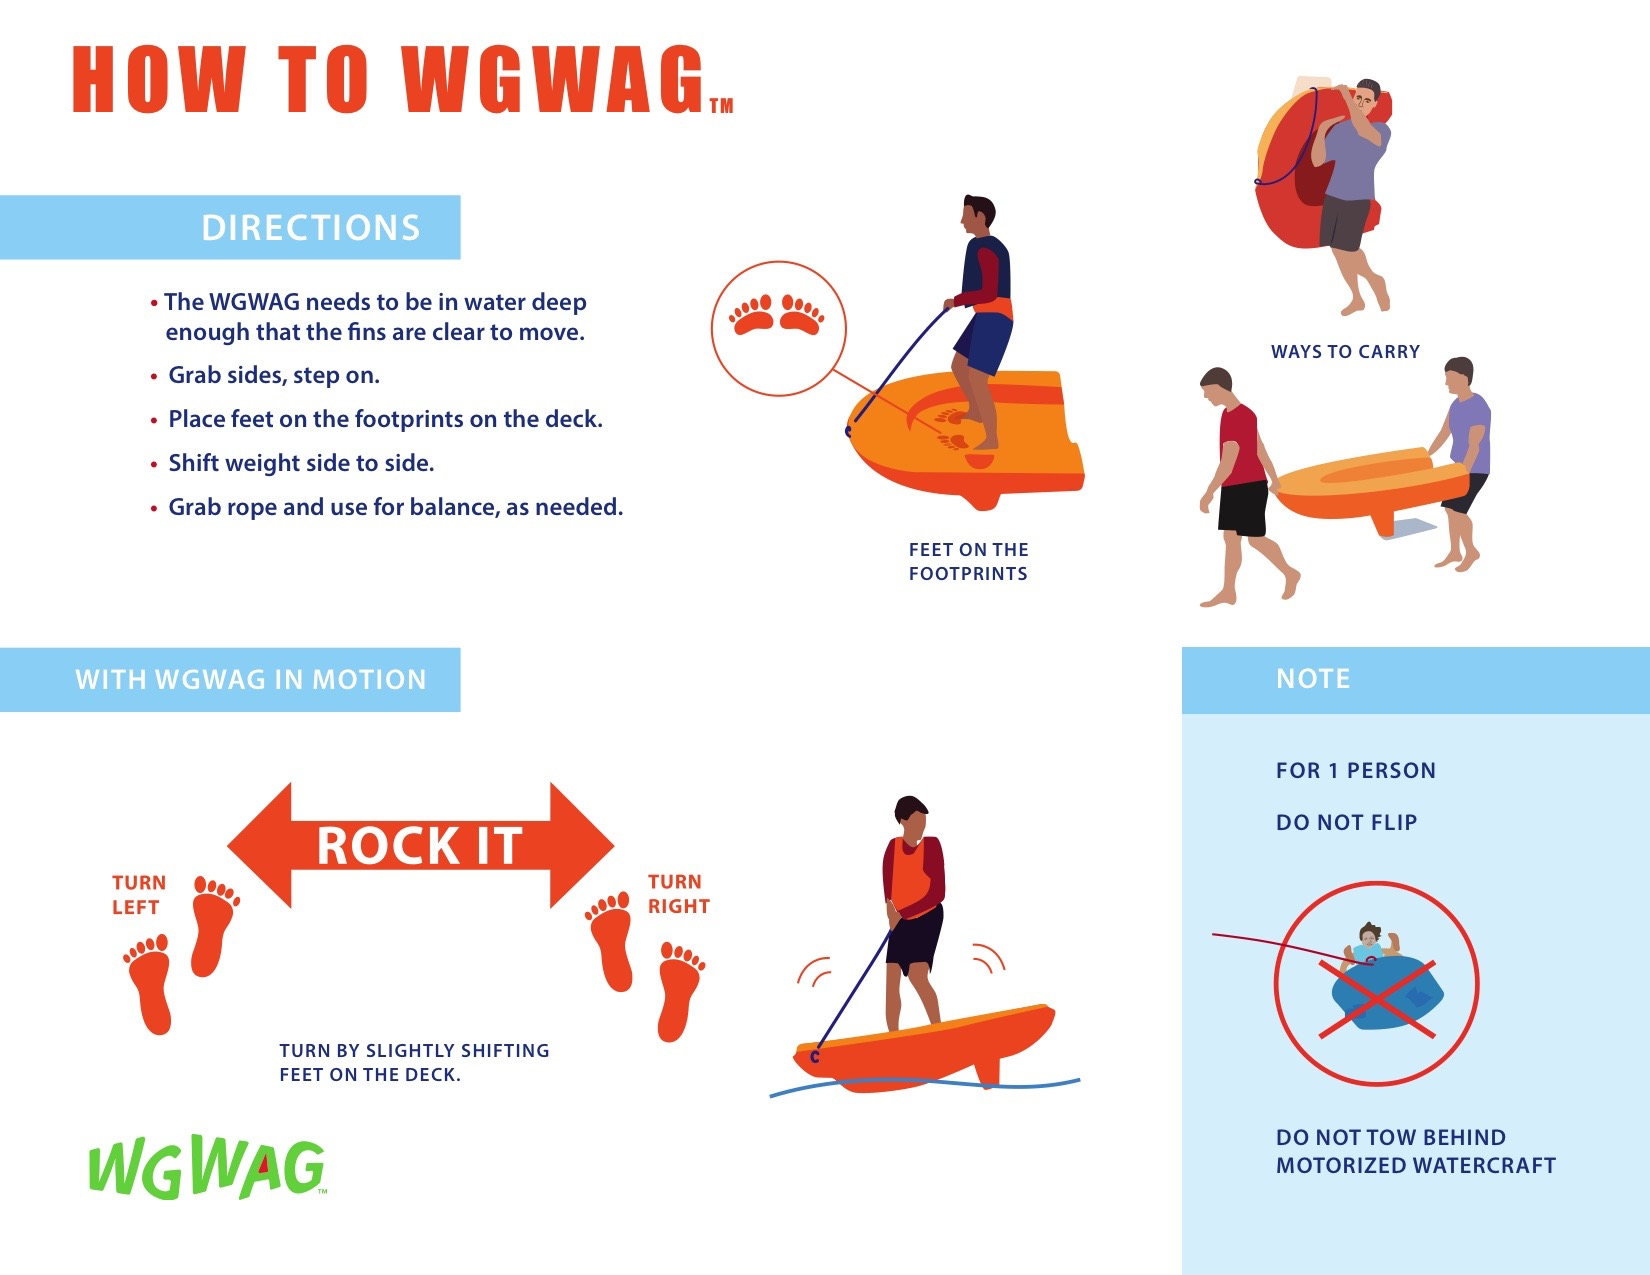 how-to-wgwag-website.jpg